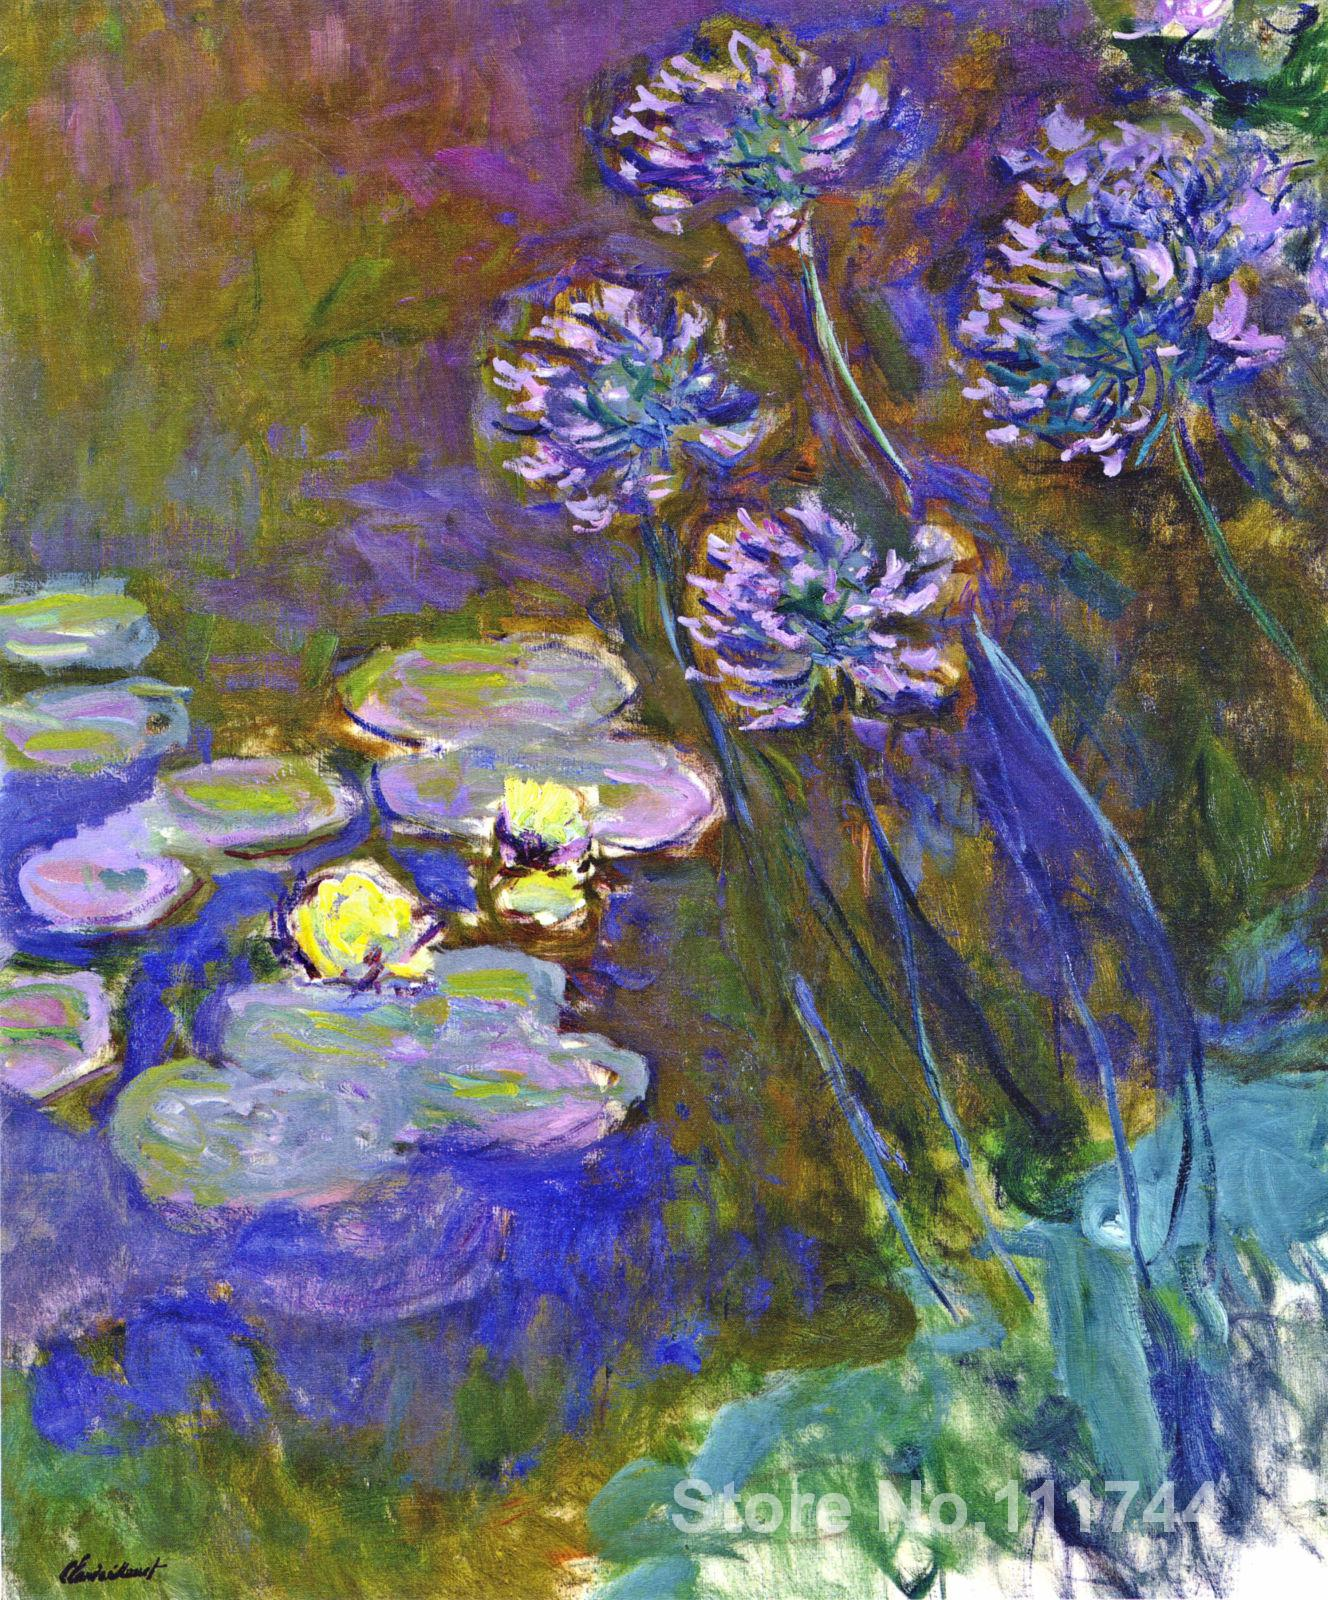 Online art gallery water lilies and agapanthus claude for Online art gallery paintings